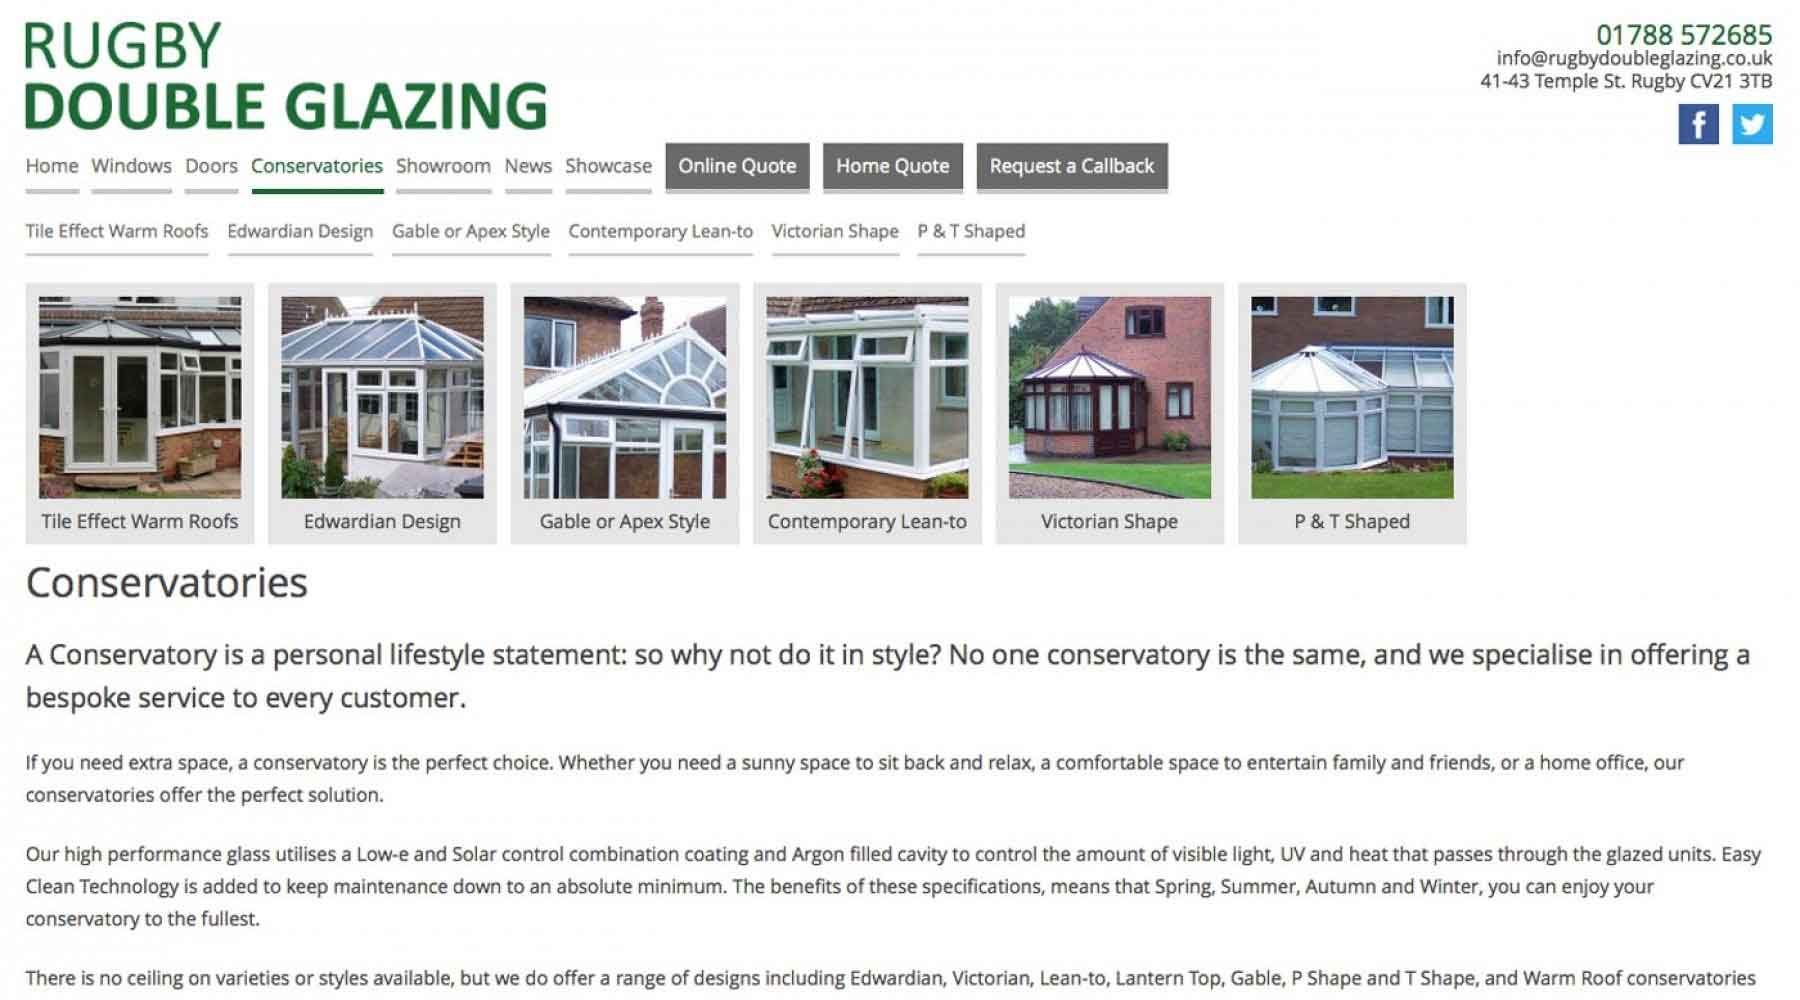 rugbydoubleglazing-web-3